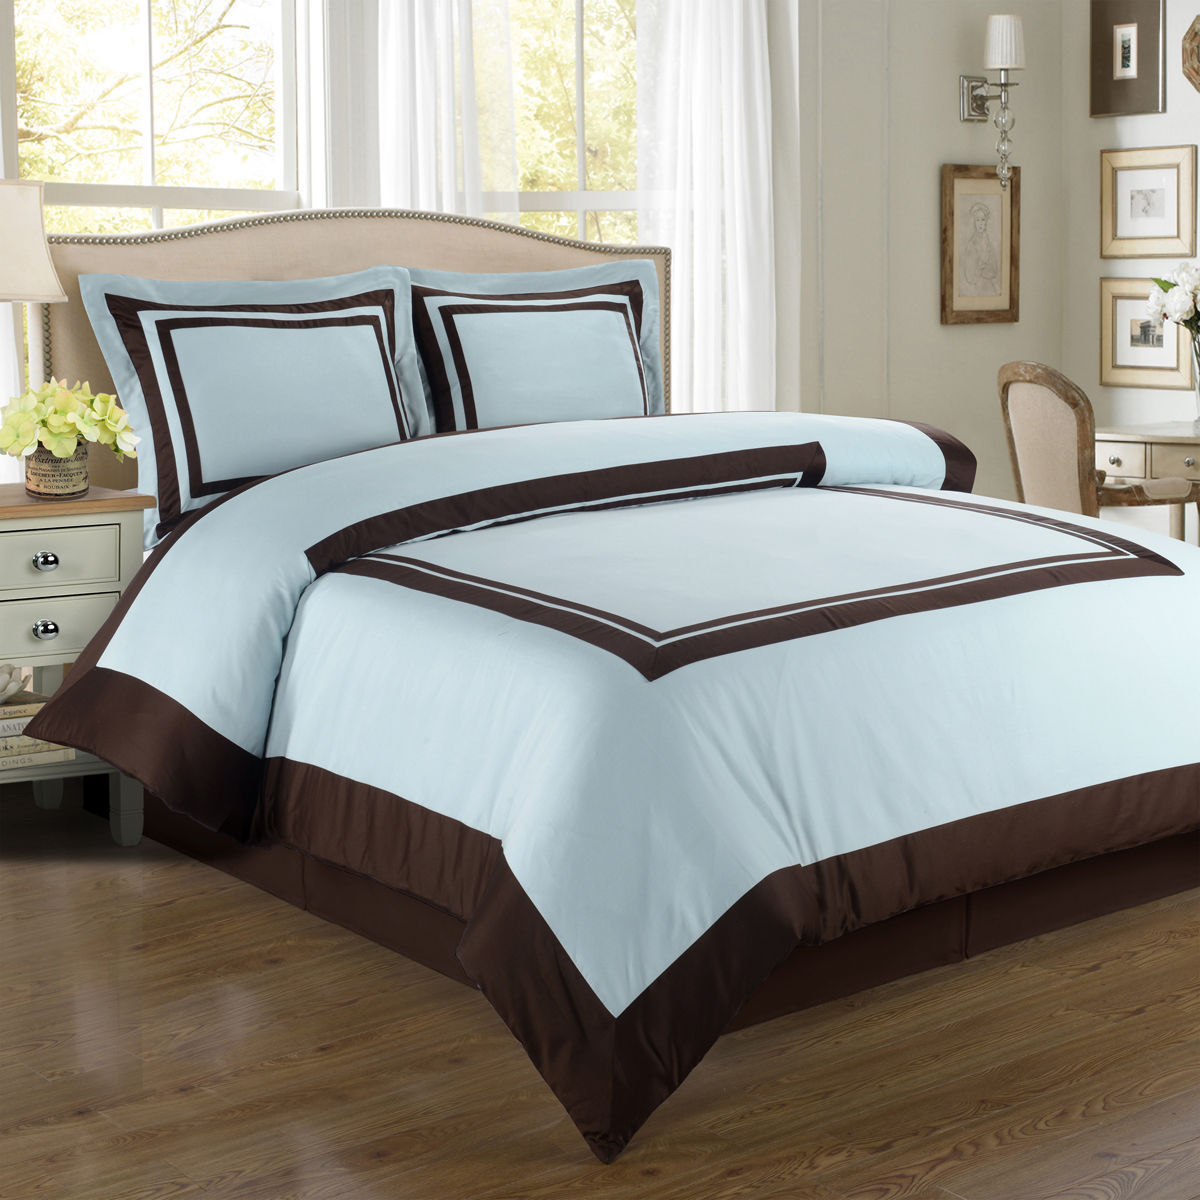 Royal Tradition Hotel Blue Amp Brown Cotton Duvet Cover